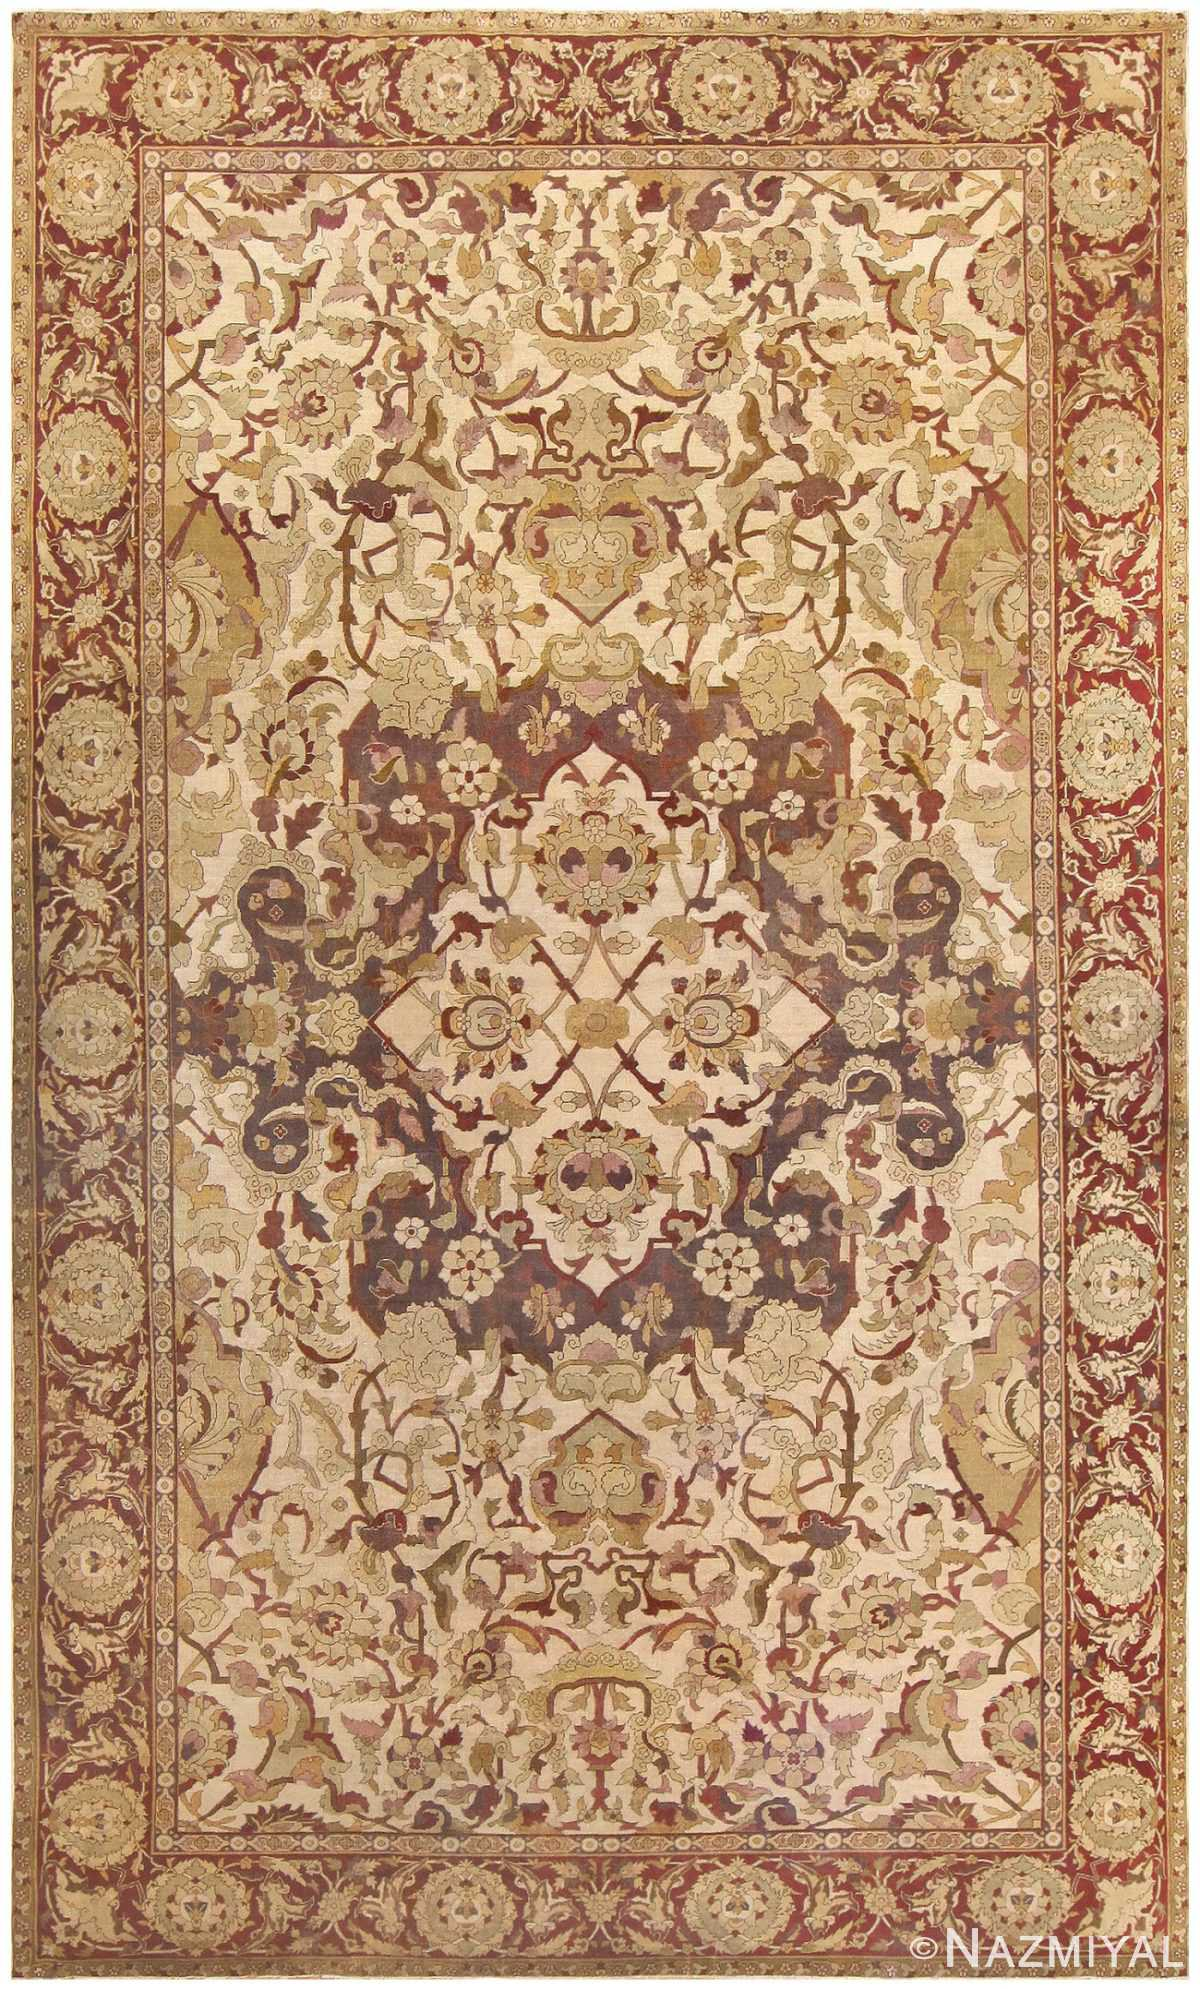 Antique Amritsar Indian Carpet 50201 Nazmiyal